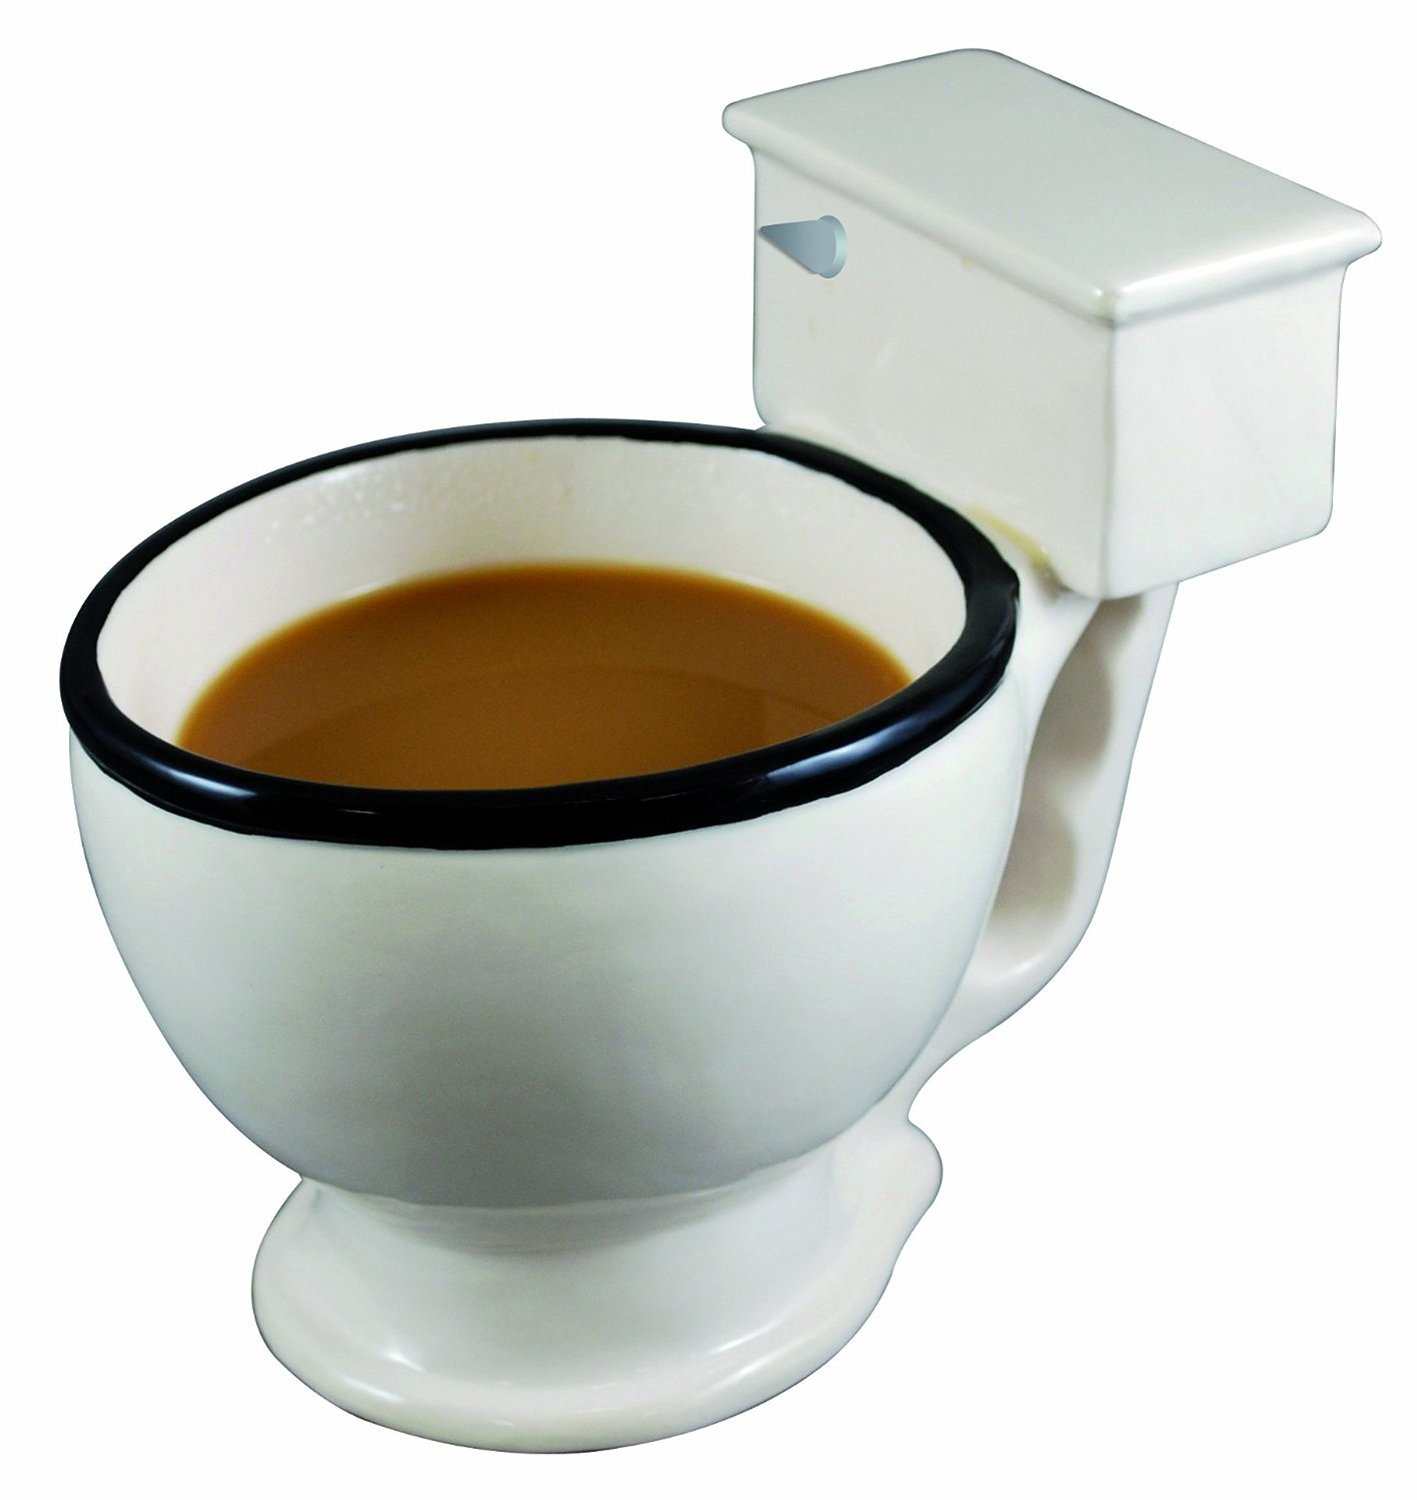 coffee tea mug shaped like a toilet moochly. Black Bedroom Furniture Sets. Home Design Ideas